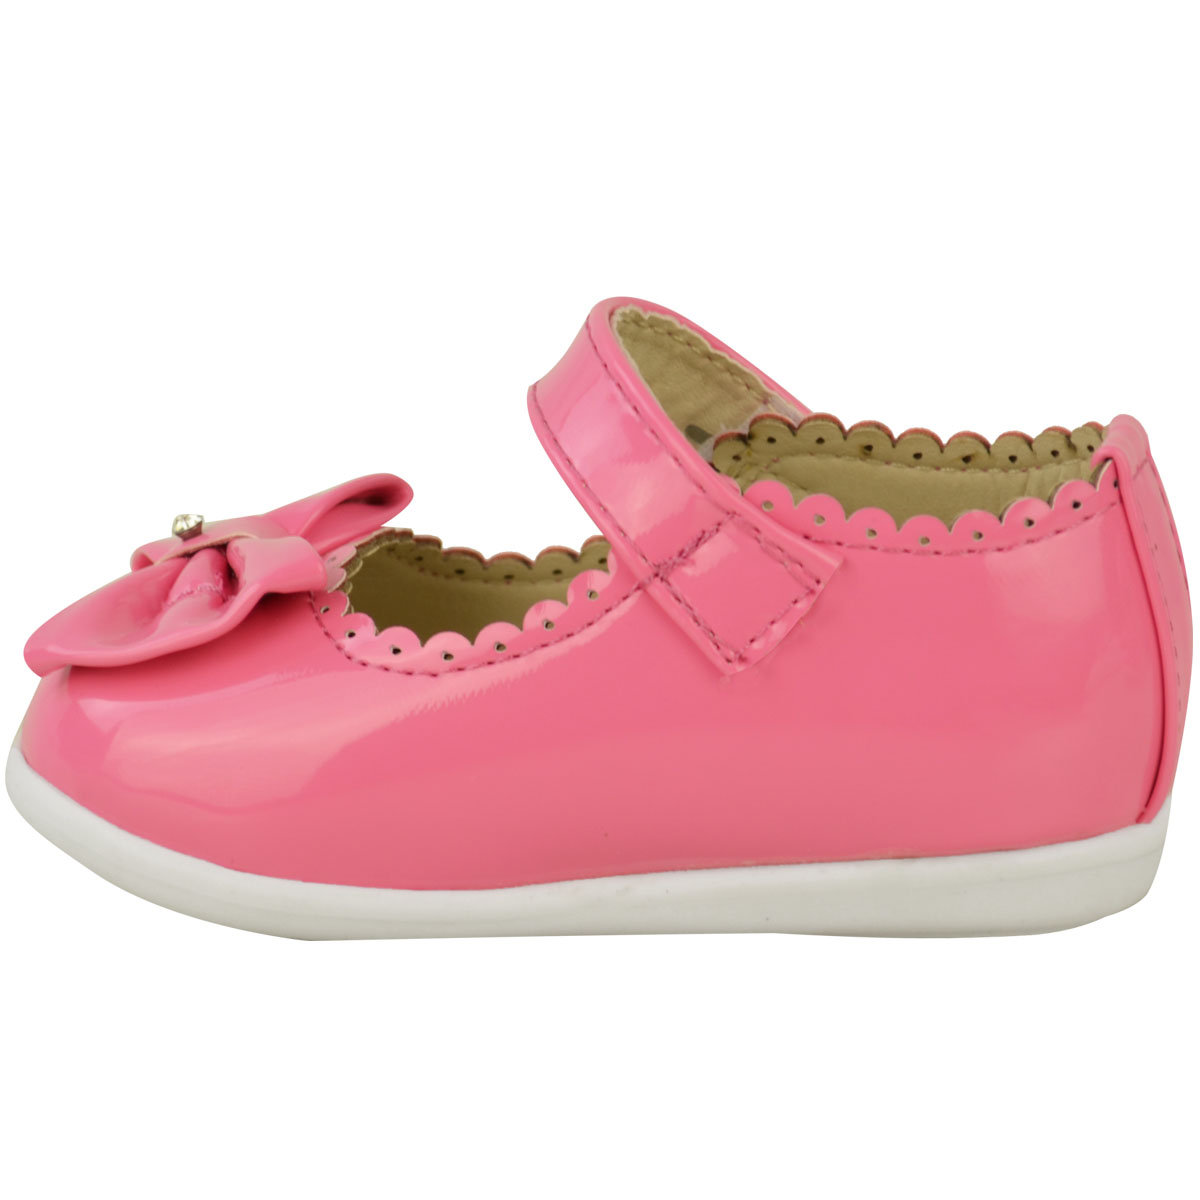 flat shoes for girls - photo #18